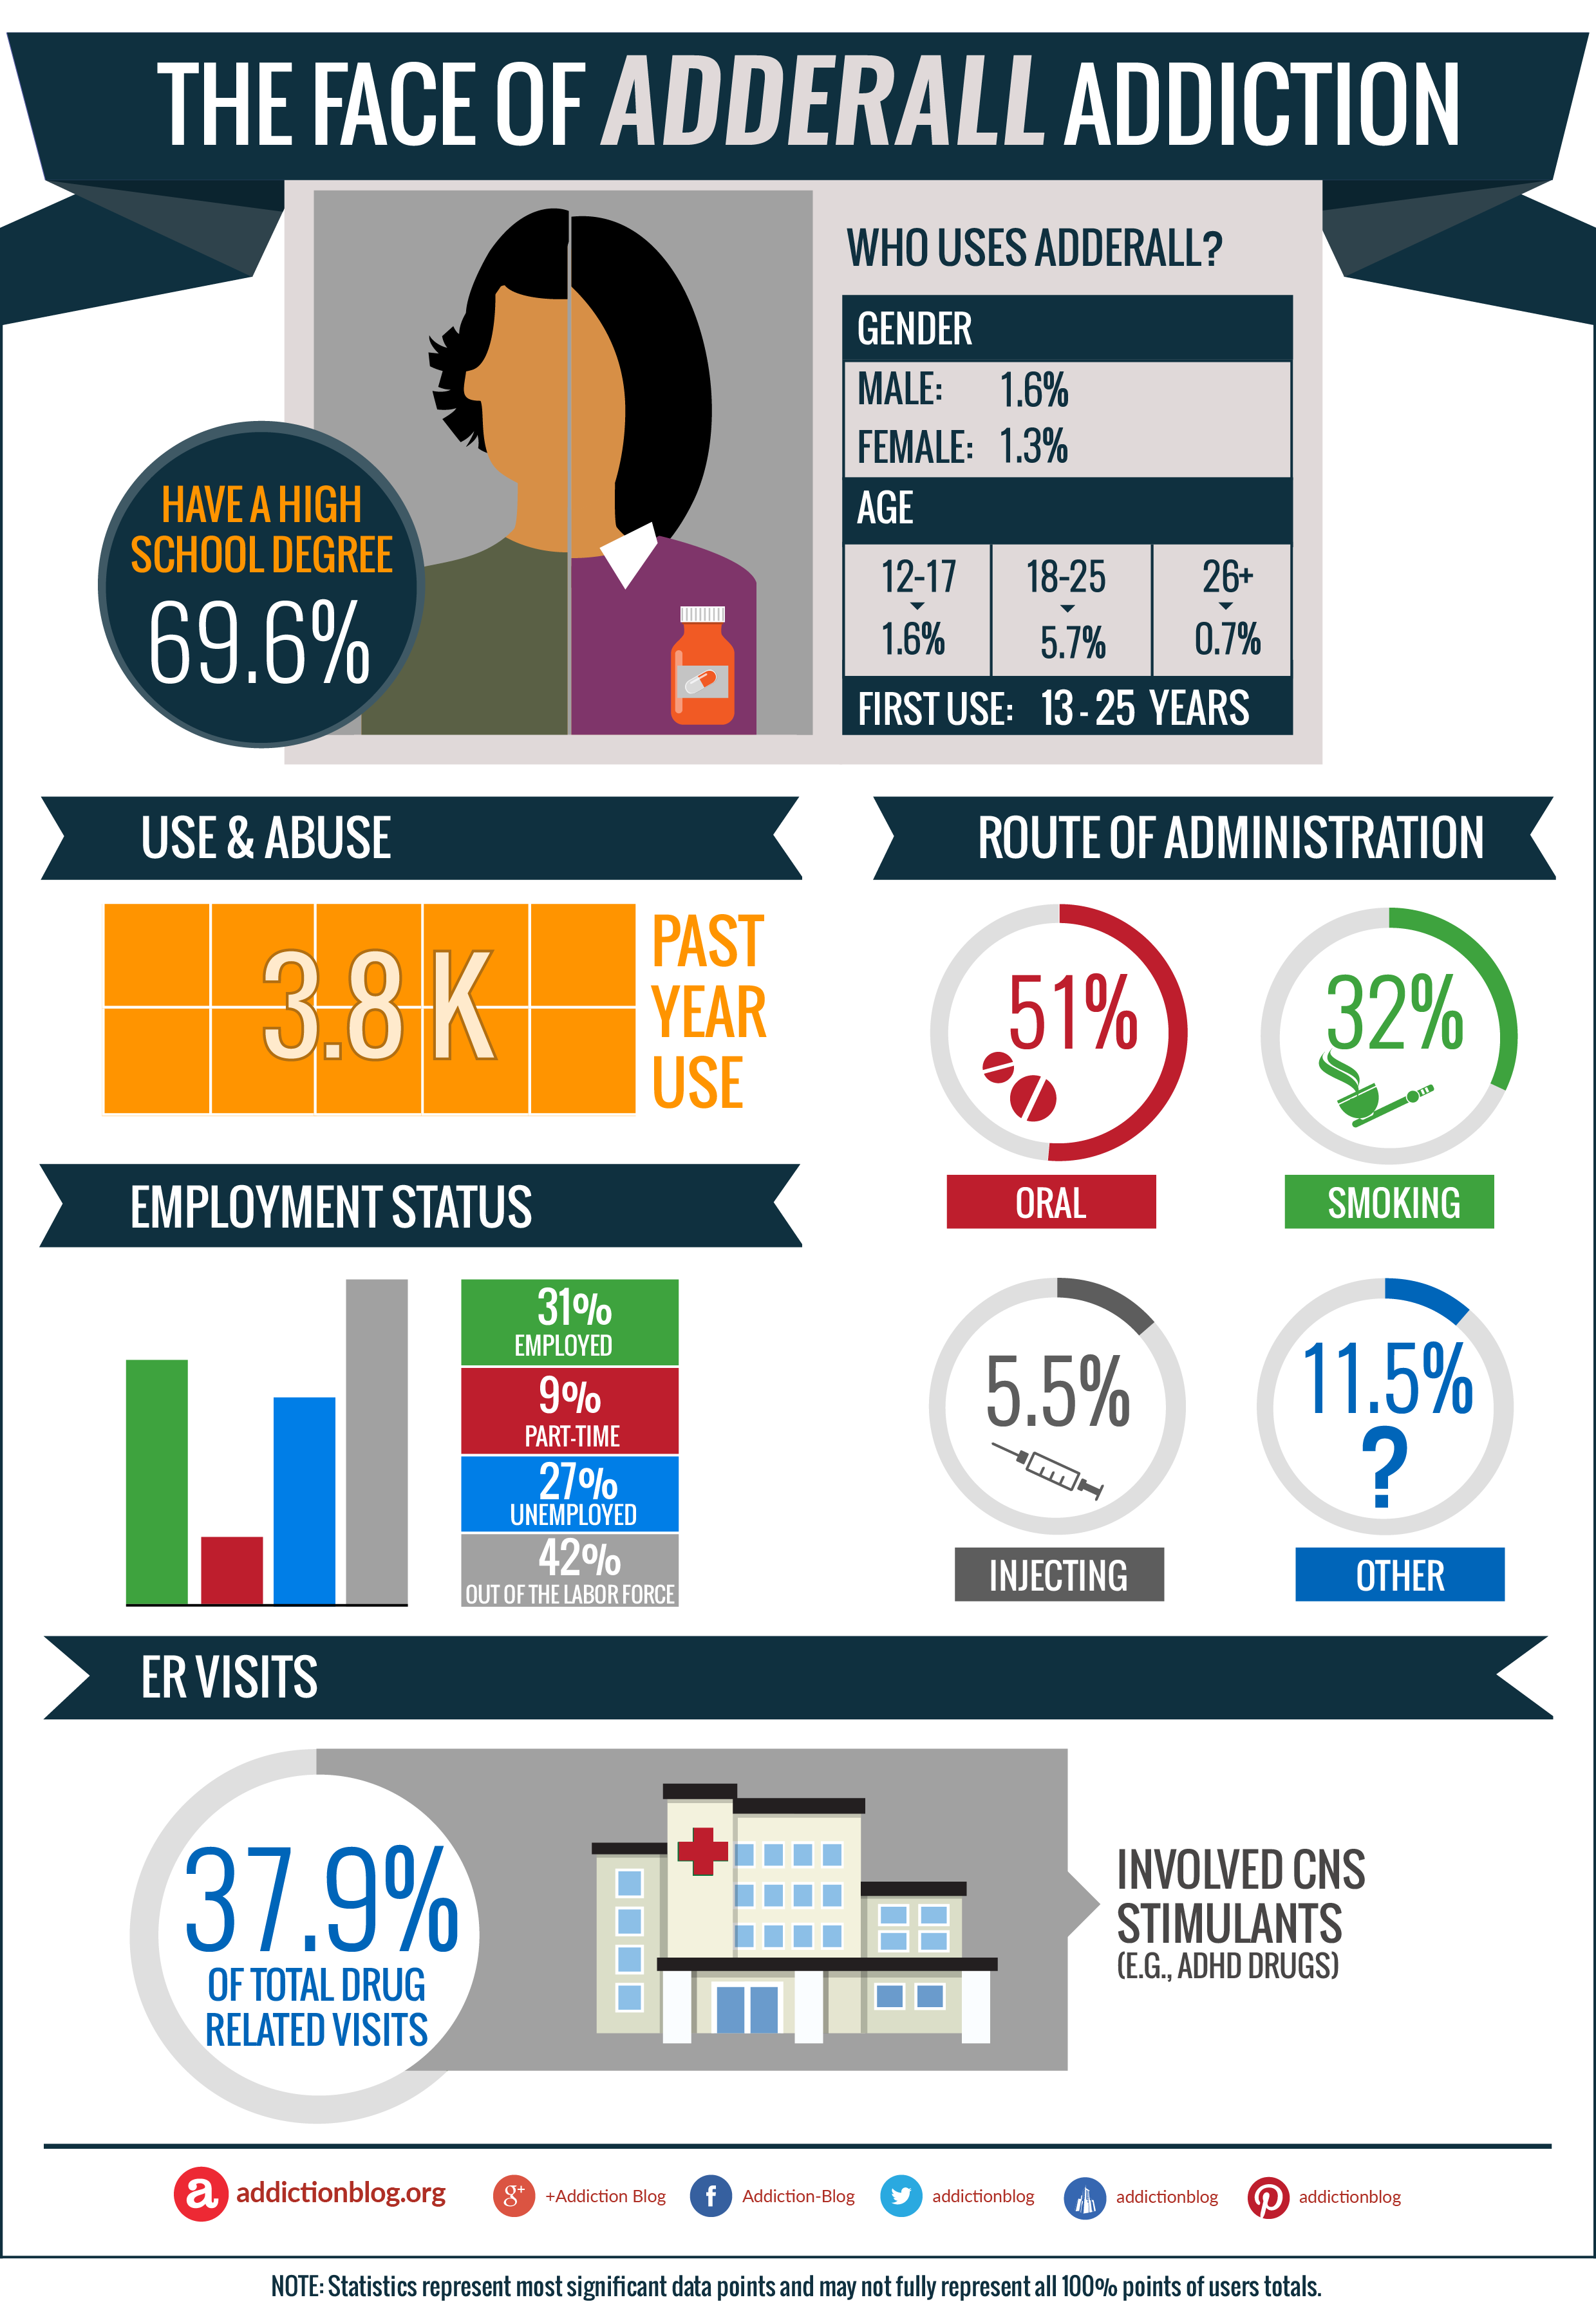 The face of Adderall addiction: Who uses Adderall? (INFOGRAPHIC)